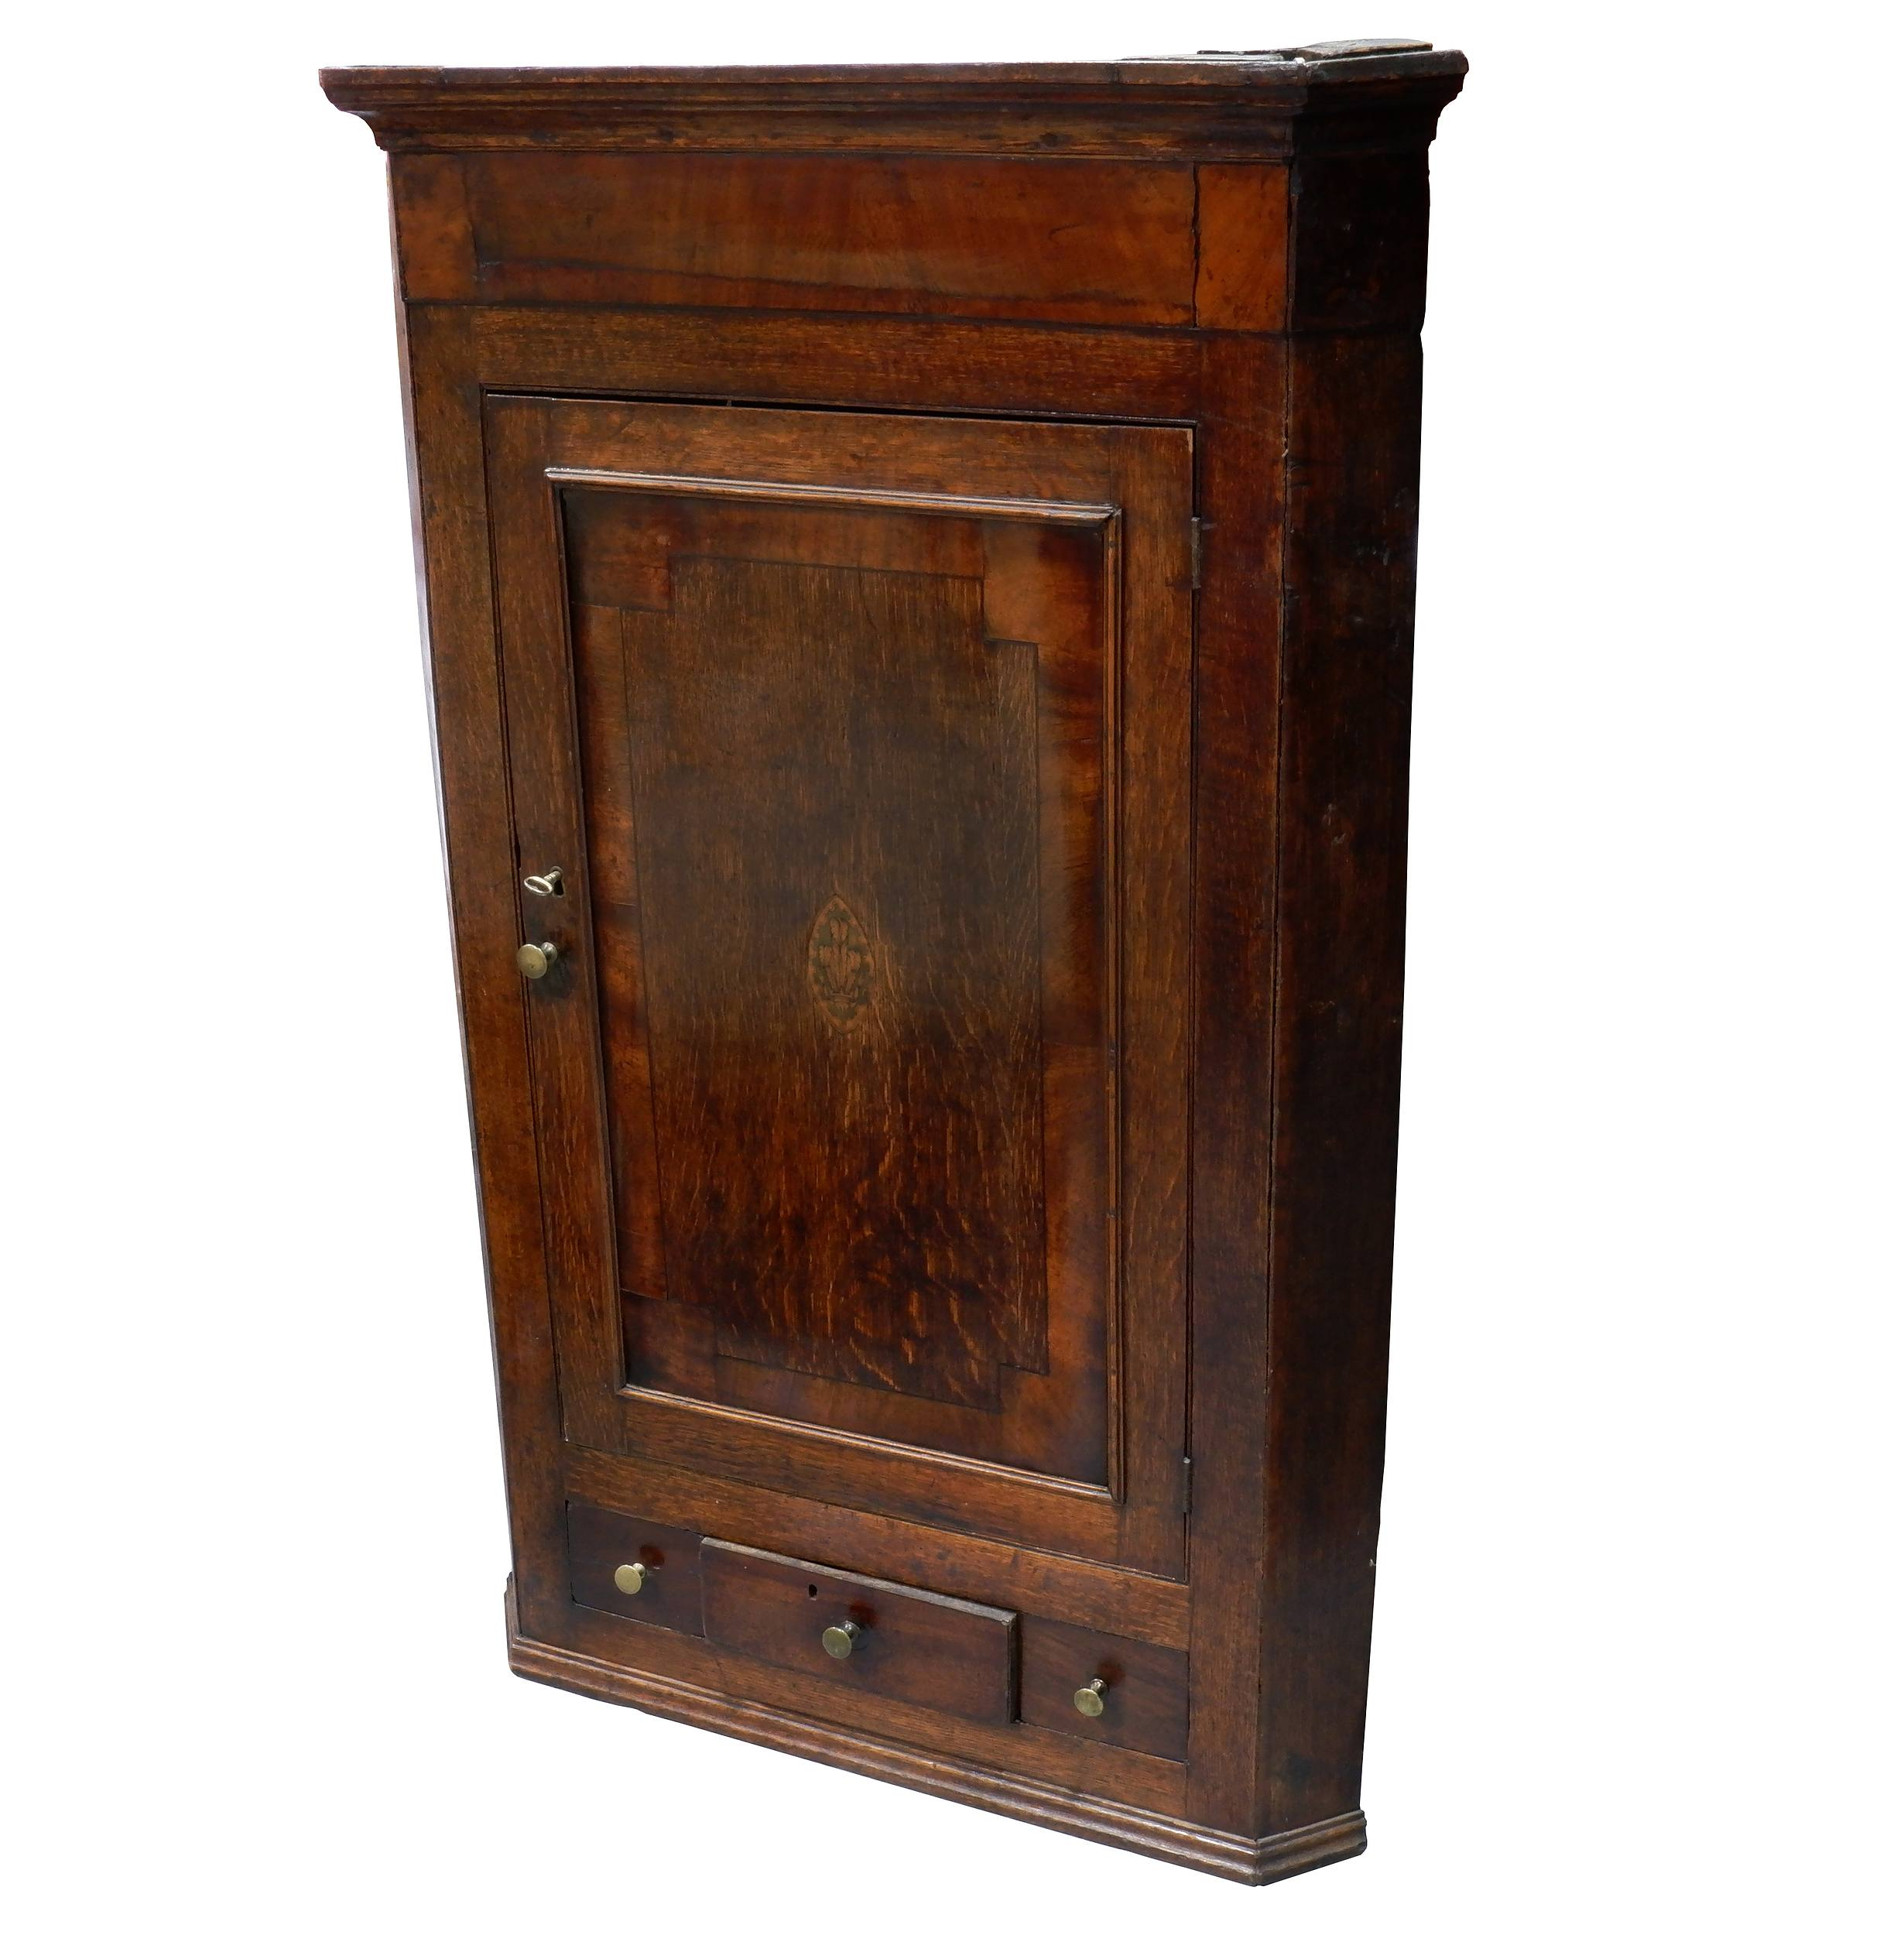 'George III Oak and Mahogany Hanging Corner Cabinet, with Prince of Wales Feather Paterae Circa 1780'